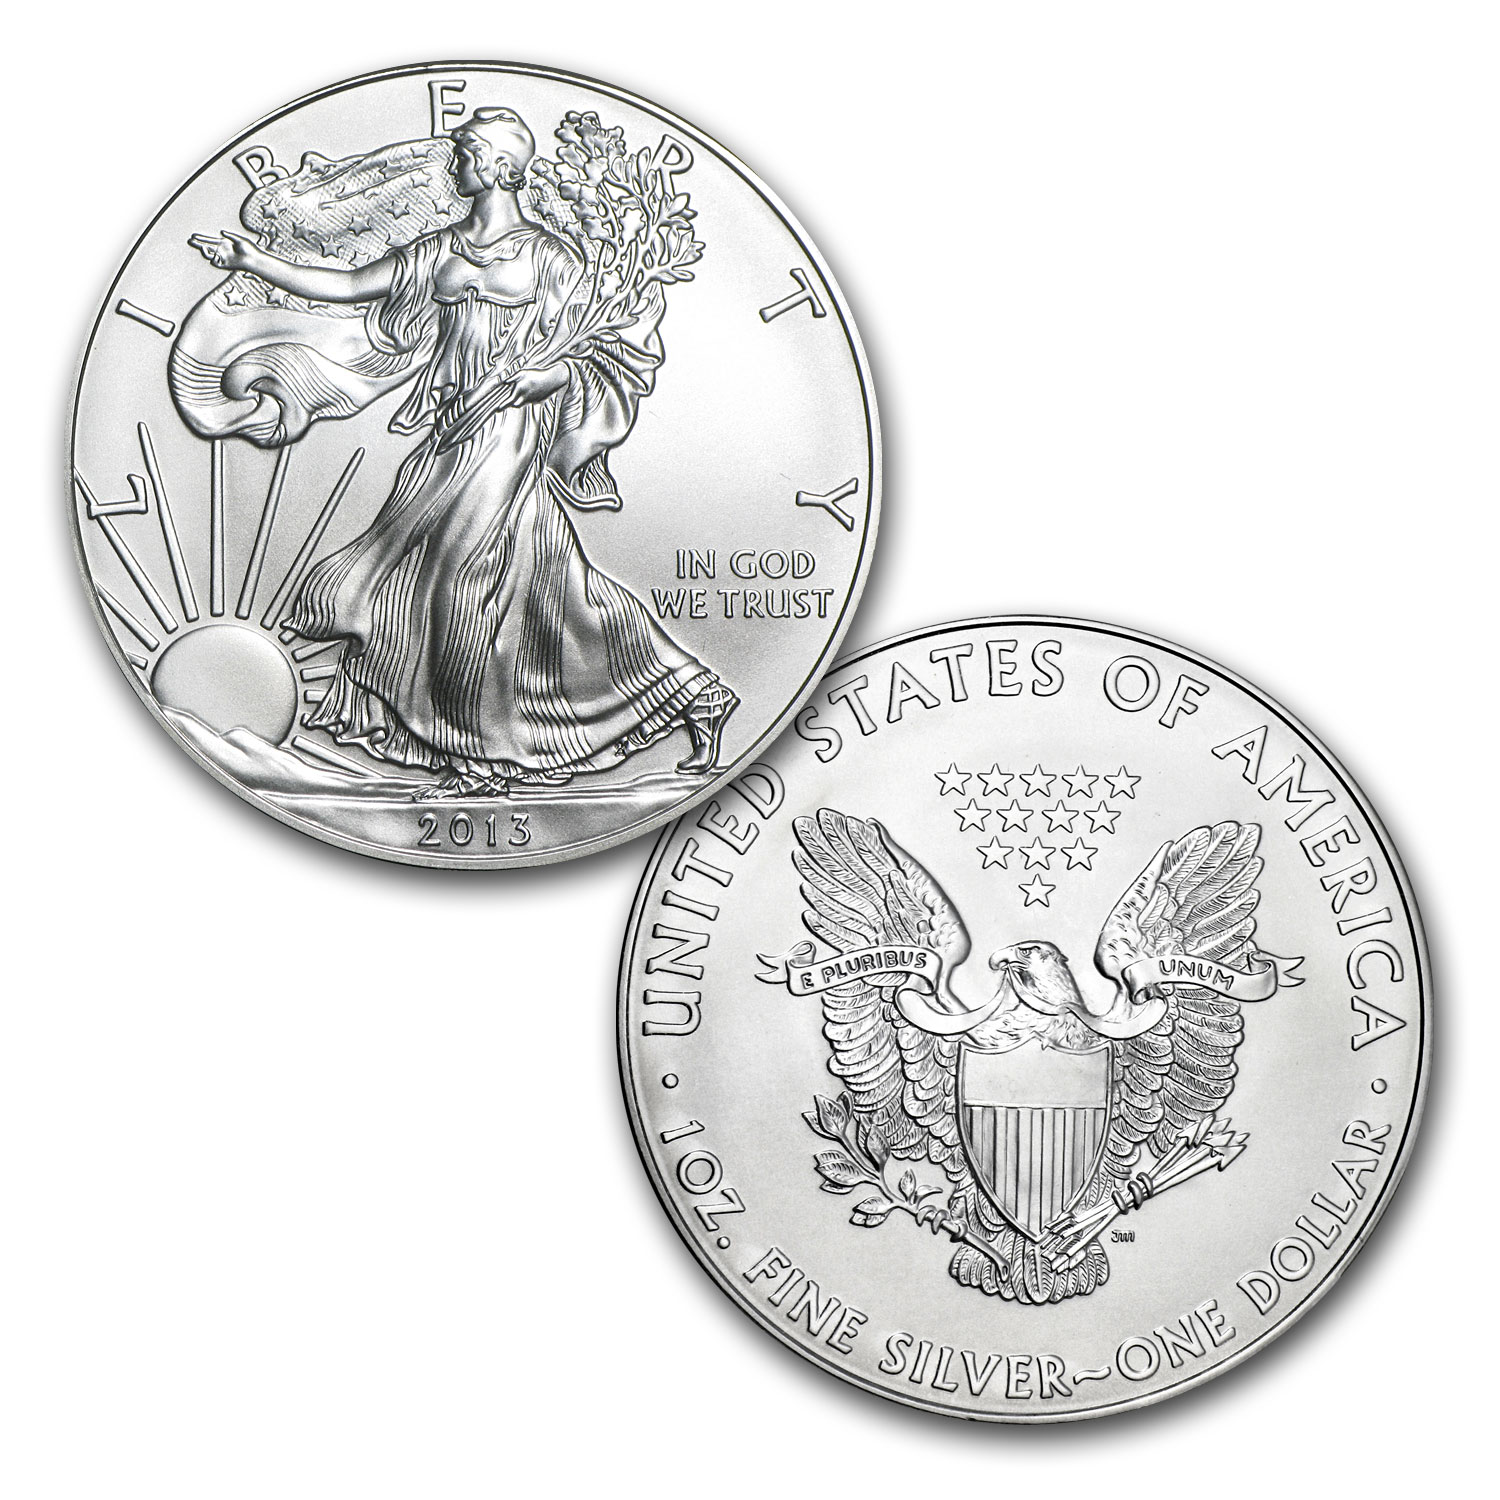 2013 1 oz Silver Eagles (20-Coin MintDirect® Premier Tube)